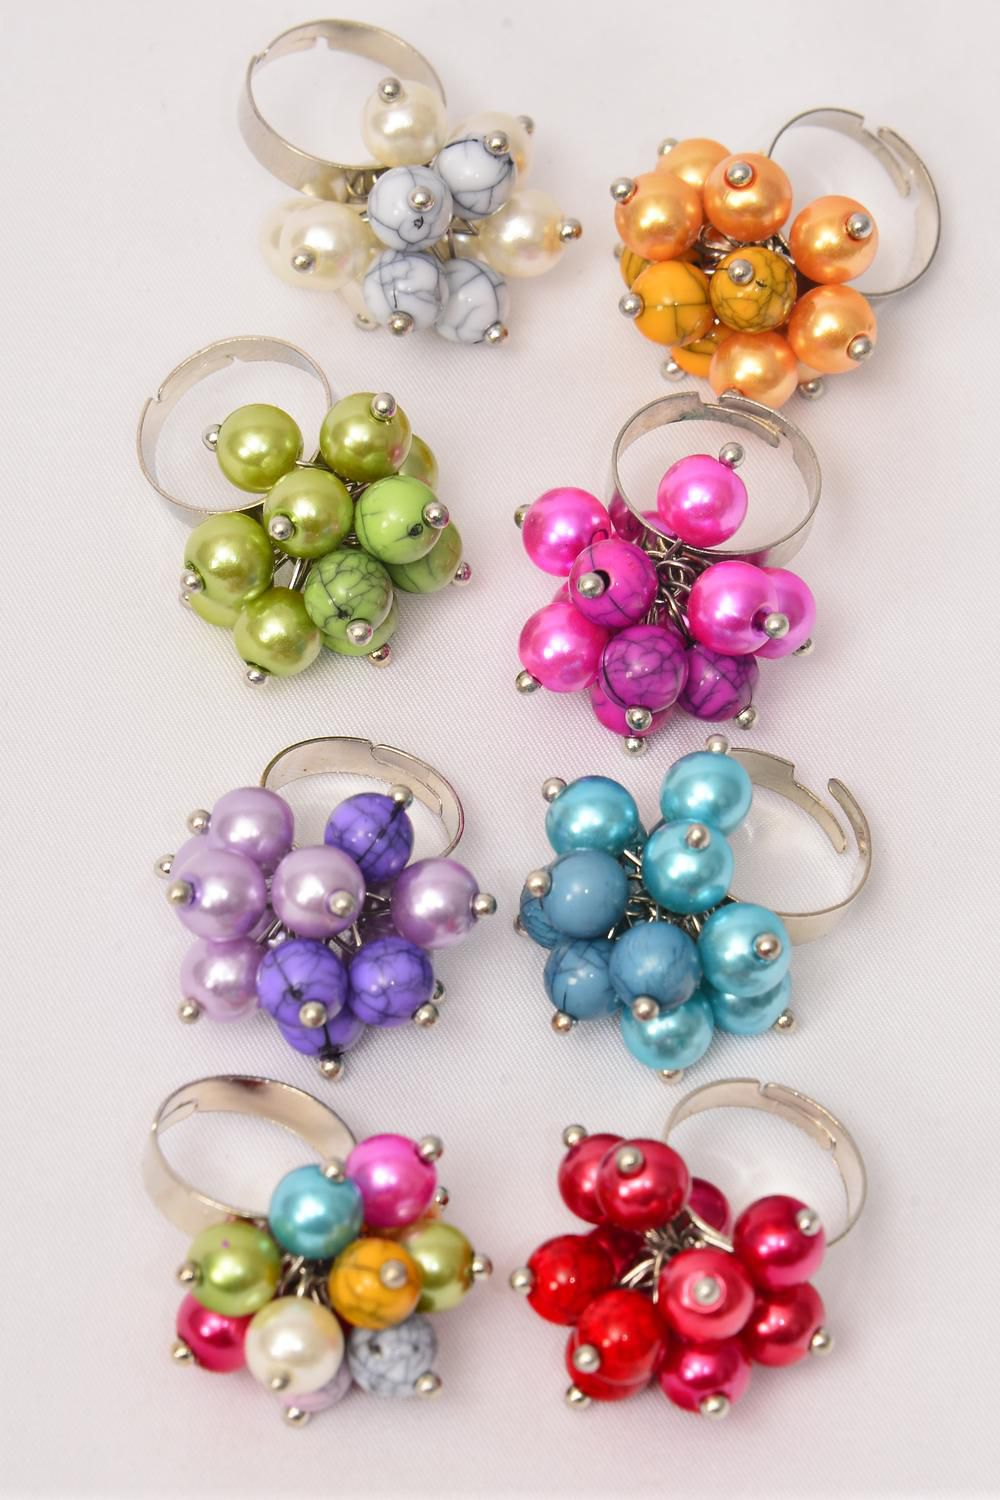 "Rings 8 mm Pearl & Marble Balls Mix/DZ **Adjustable** Width 1.25"" Wide,2 REd,2 Blue,2 Lime,2 Multi,1 White,1 Fuchsia,1 Lavender,1 Yellow,8 Color Asst"